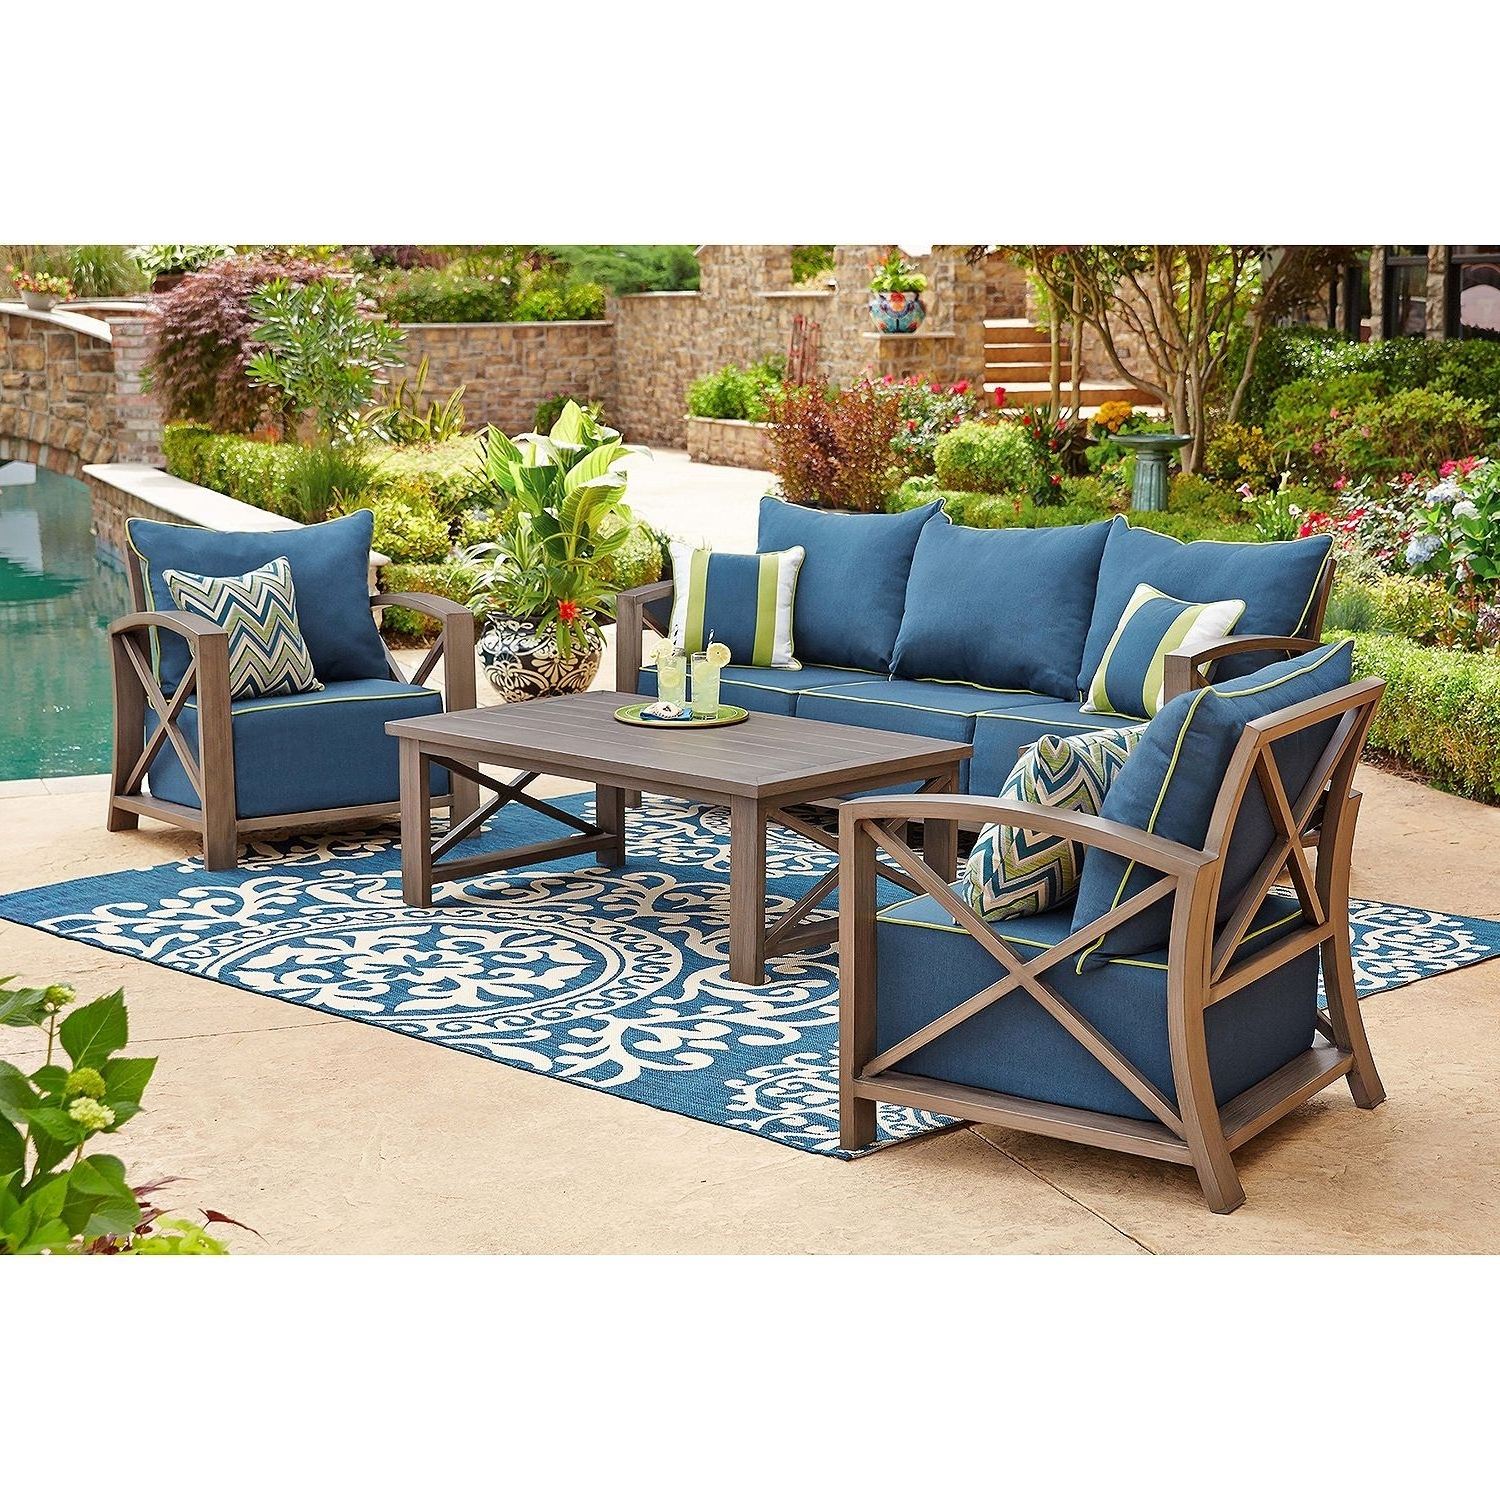 Widely Used Practical Sam S Club Outdoor Patio Furniture Appealing Replacement For Patio Conversation Sets At Sam's Club (View 4 of 20)